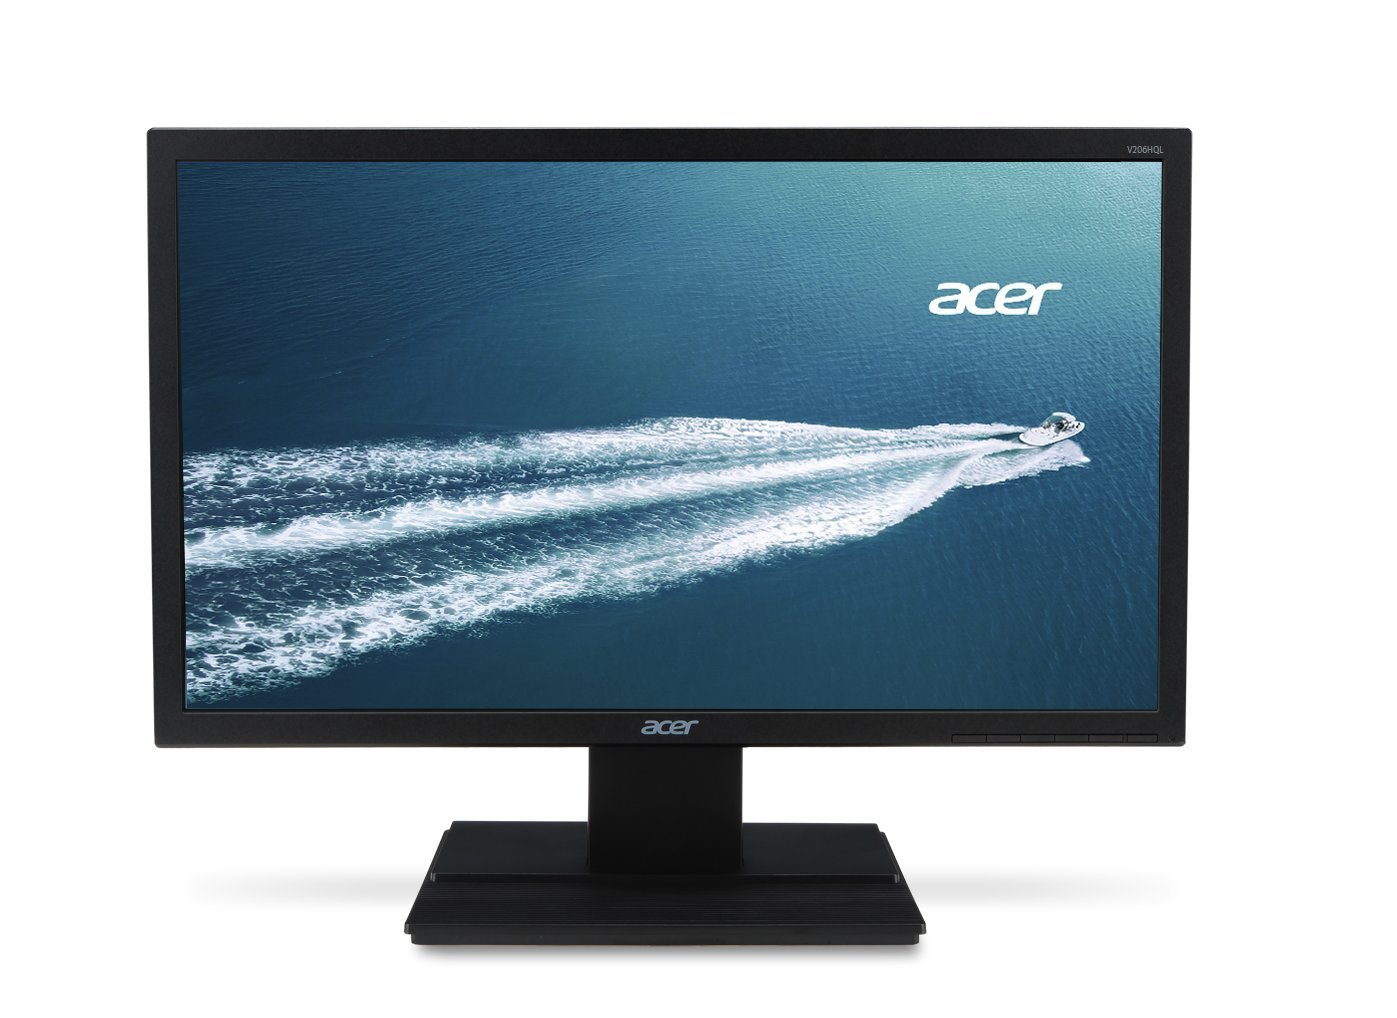 Acer 19.5-inch LED Monitor